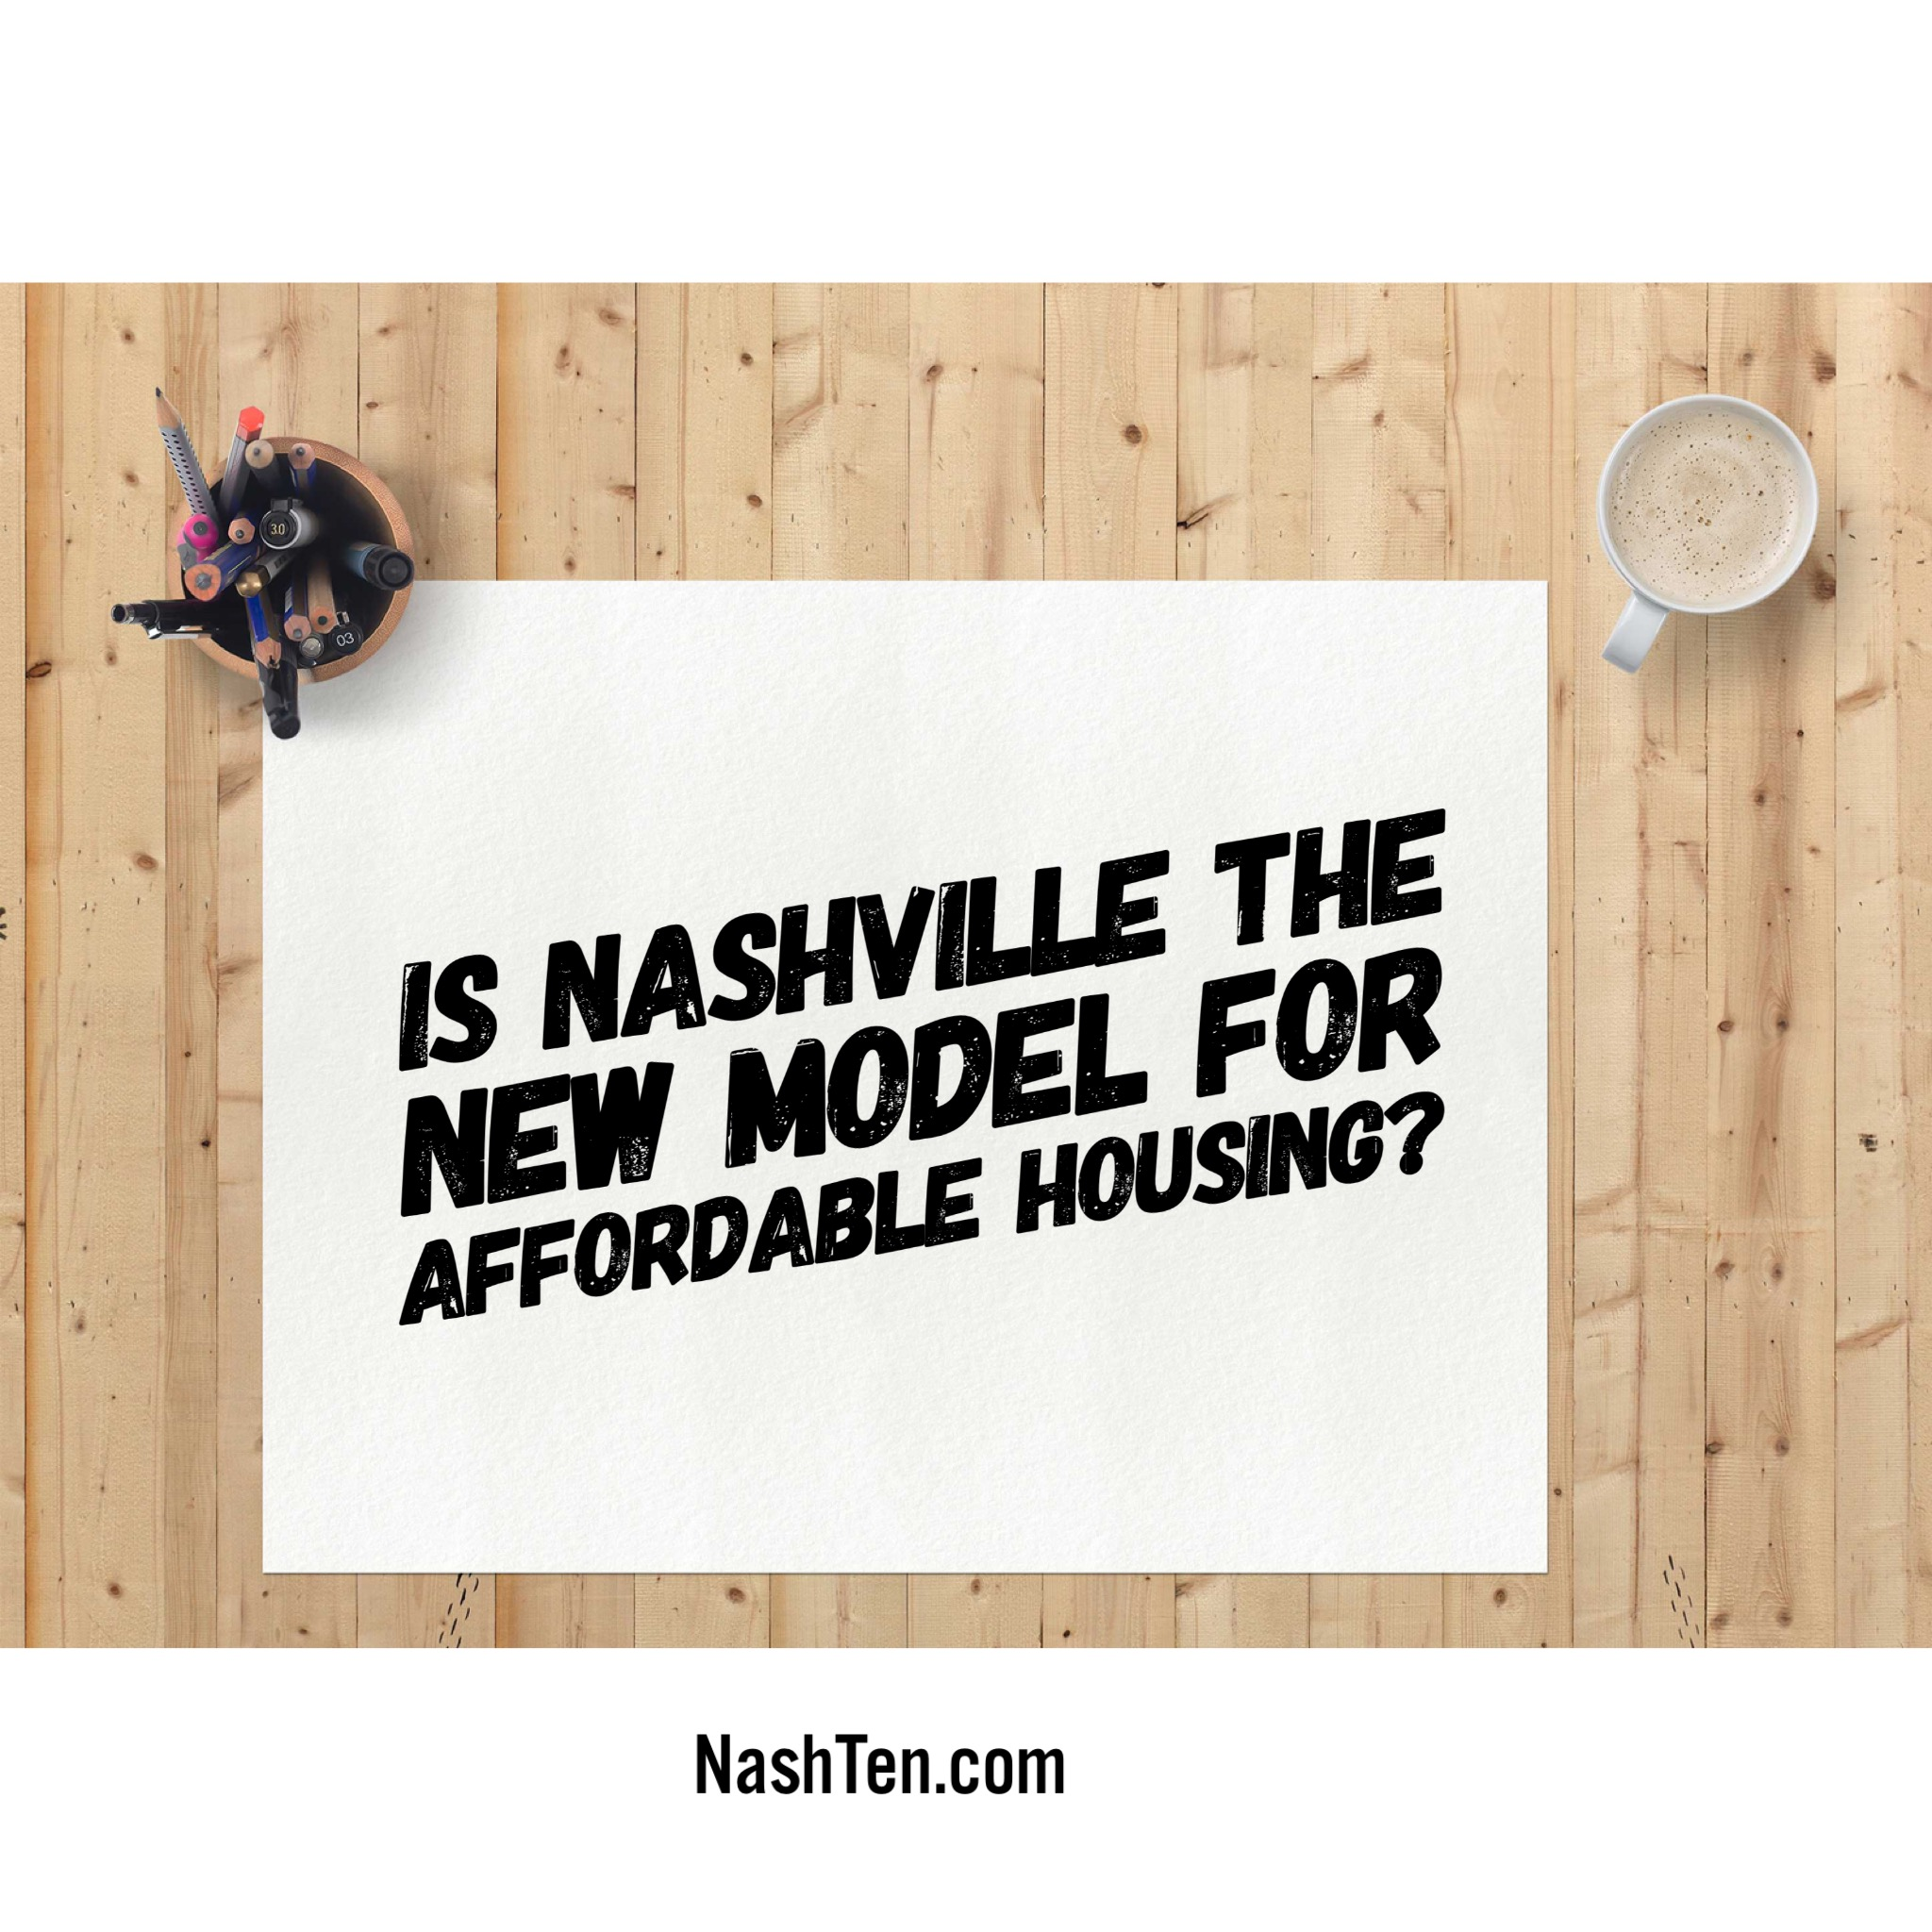 Is Nashville the new model?